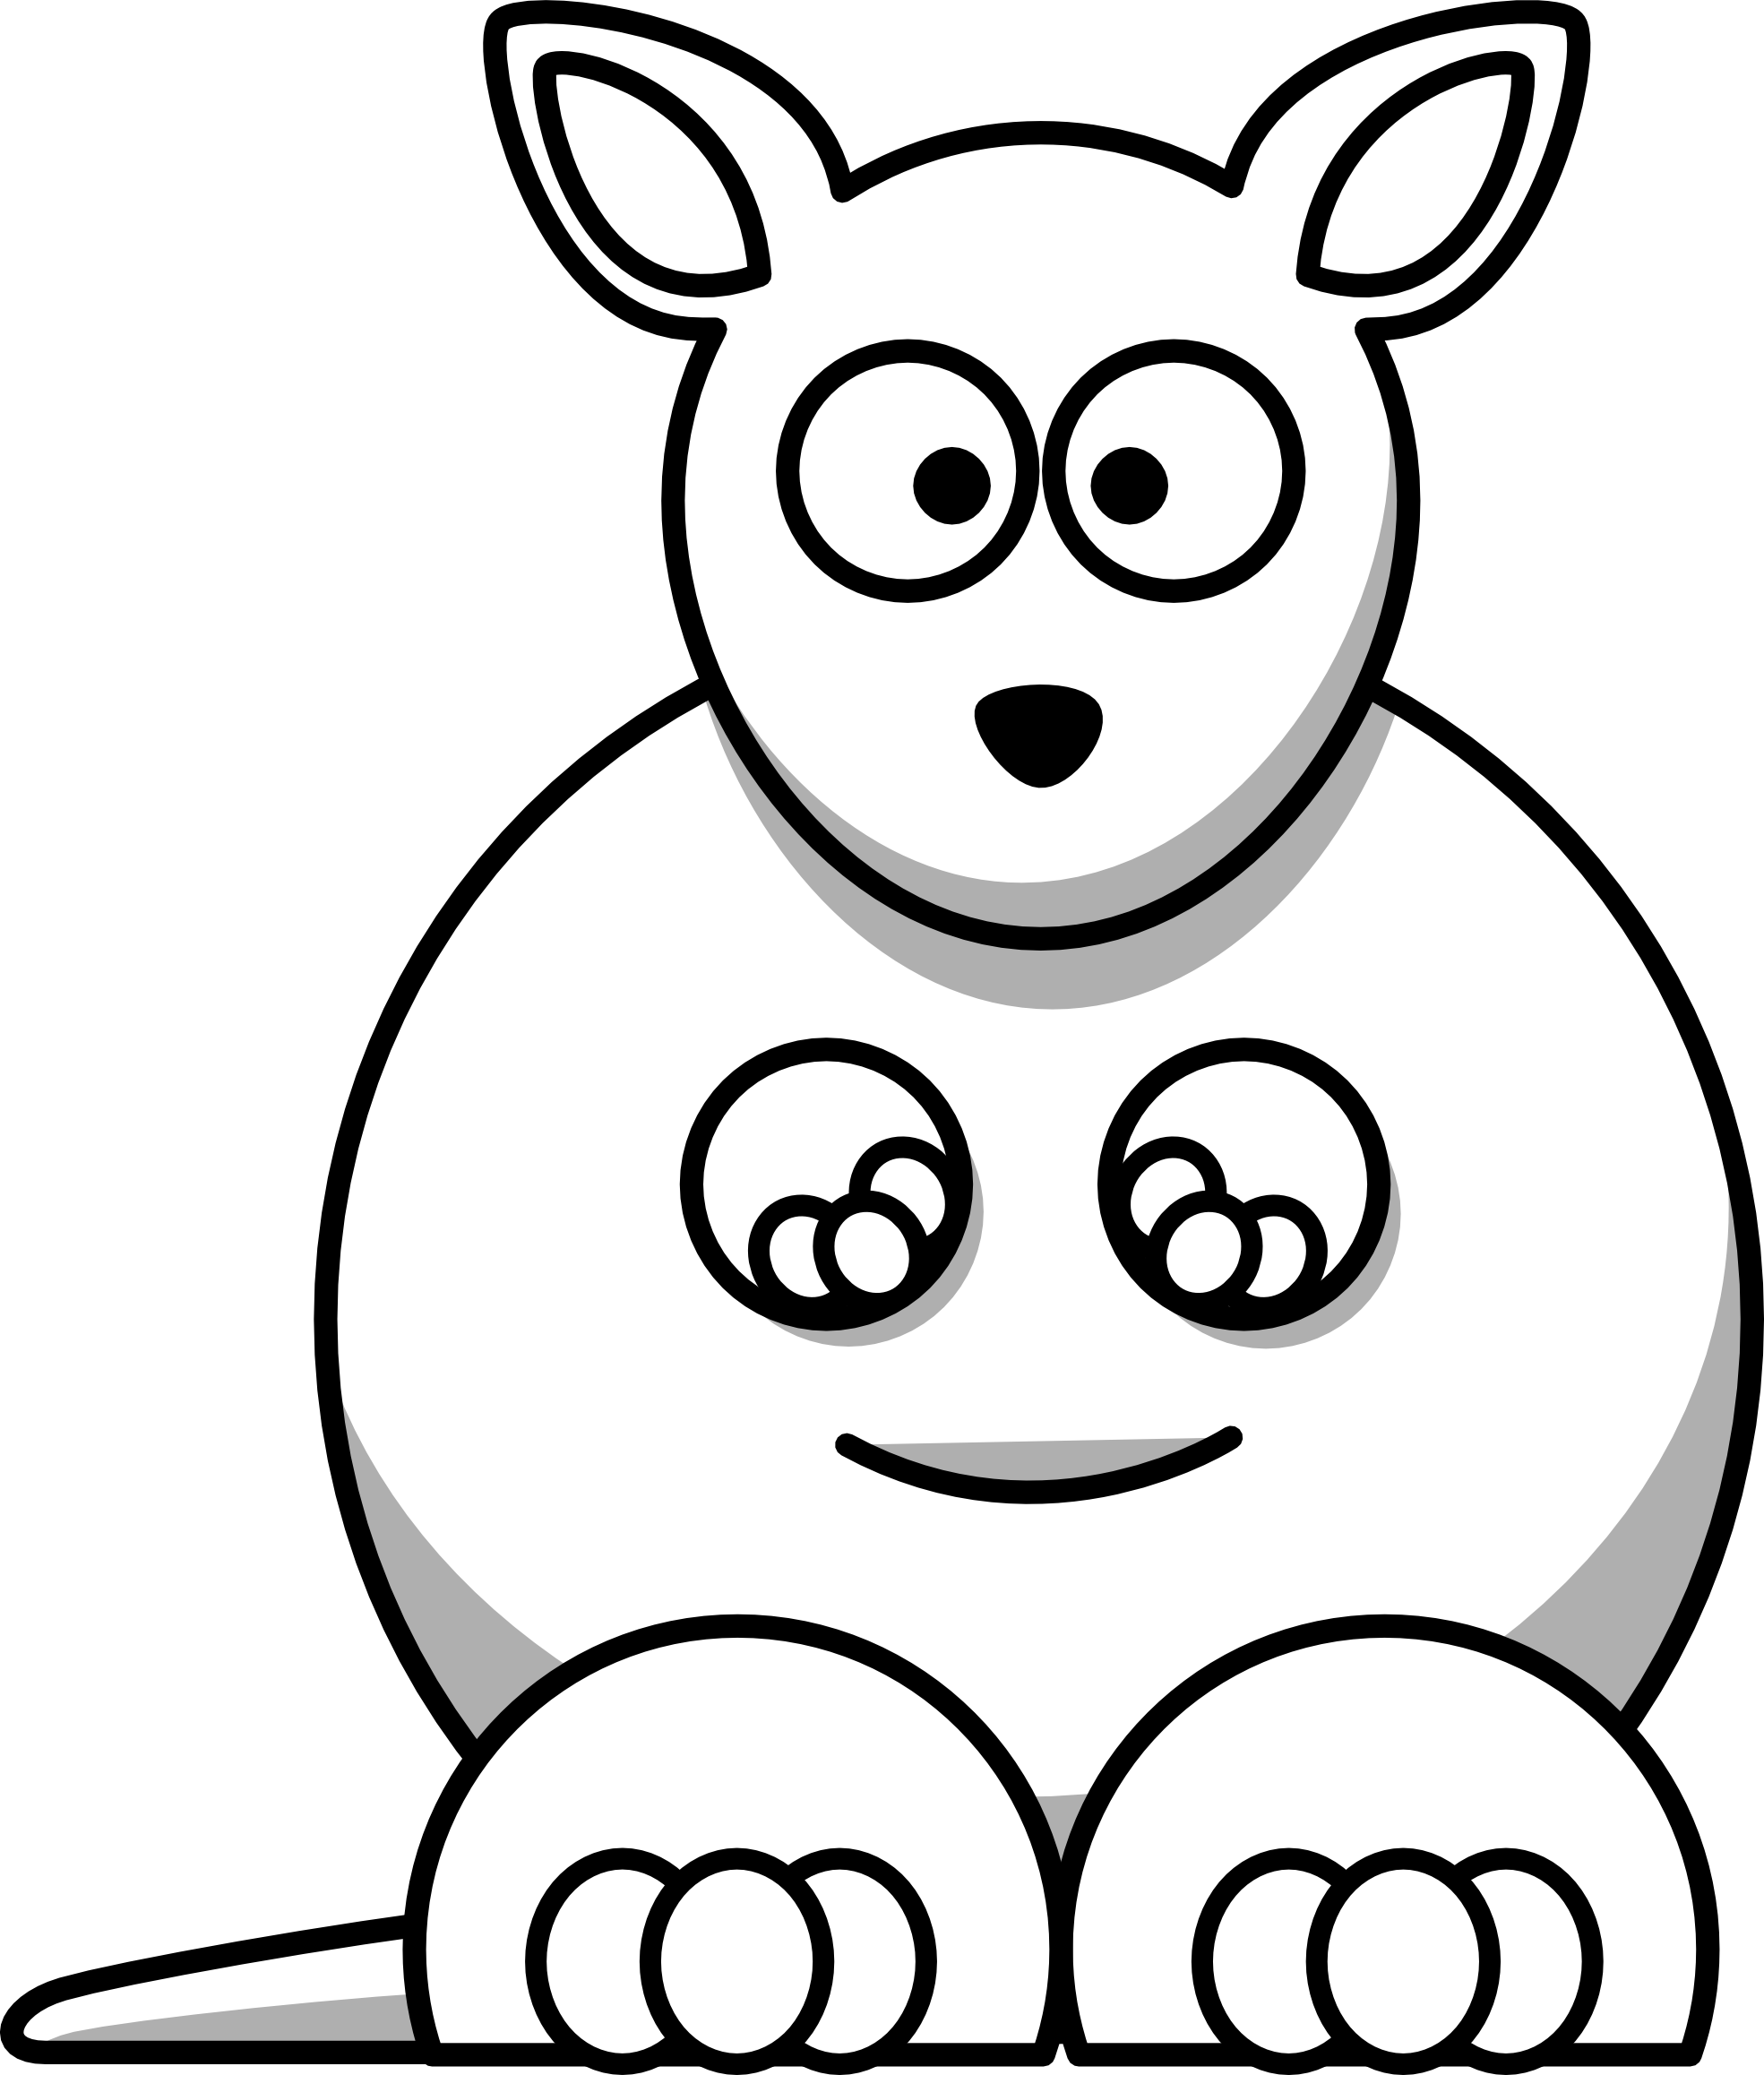 clipart freeuse library Baby animal clipart black and white. Cute animak cuddling